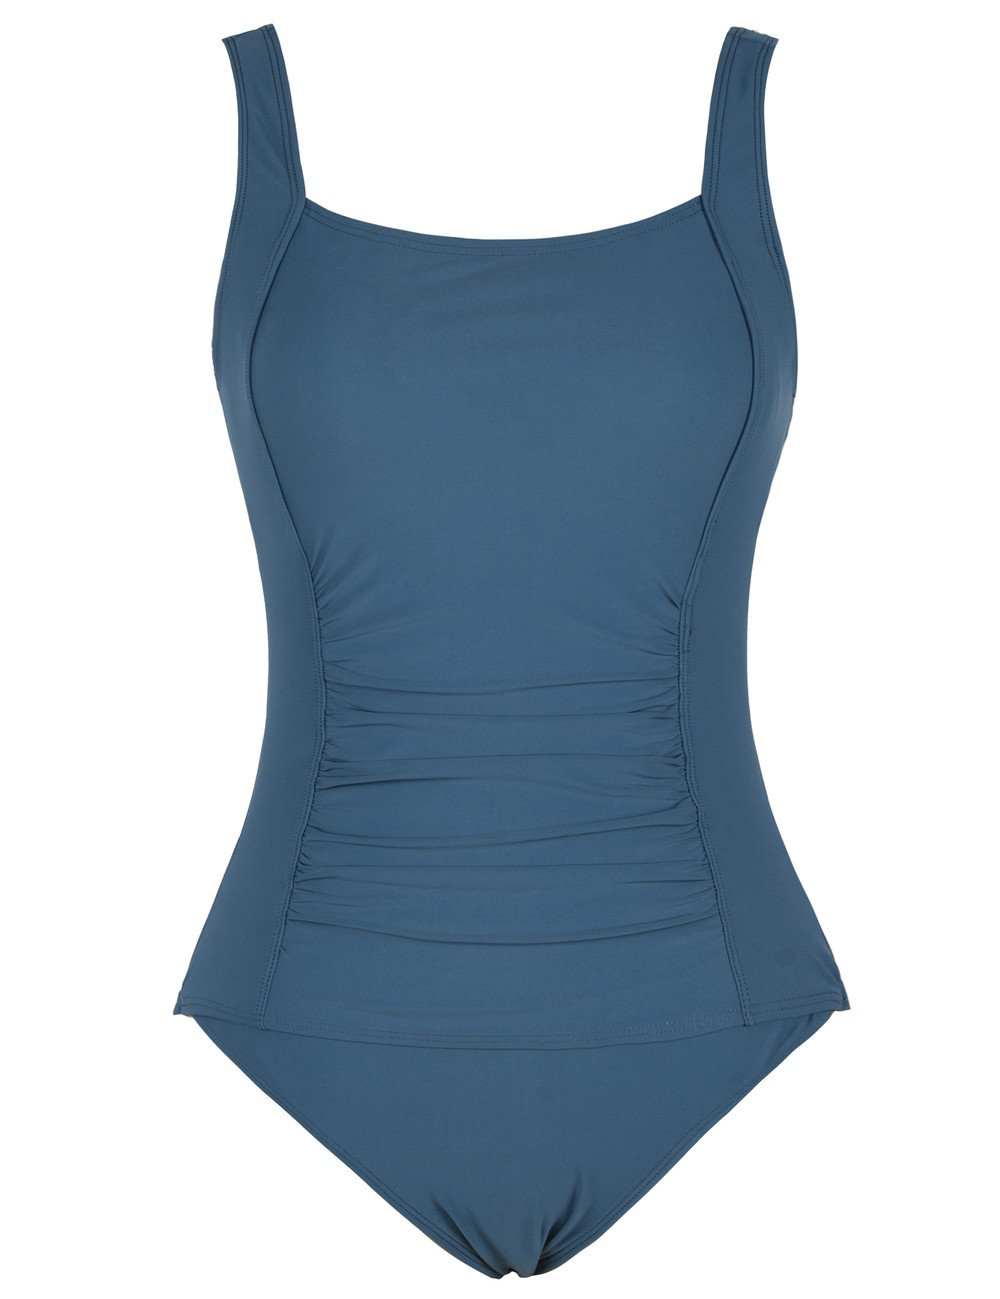 Firpearl Women's Retro One Piece Bathing Suit Ruched Tummy Control Swimsuit Aquamarine Blue US10